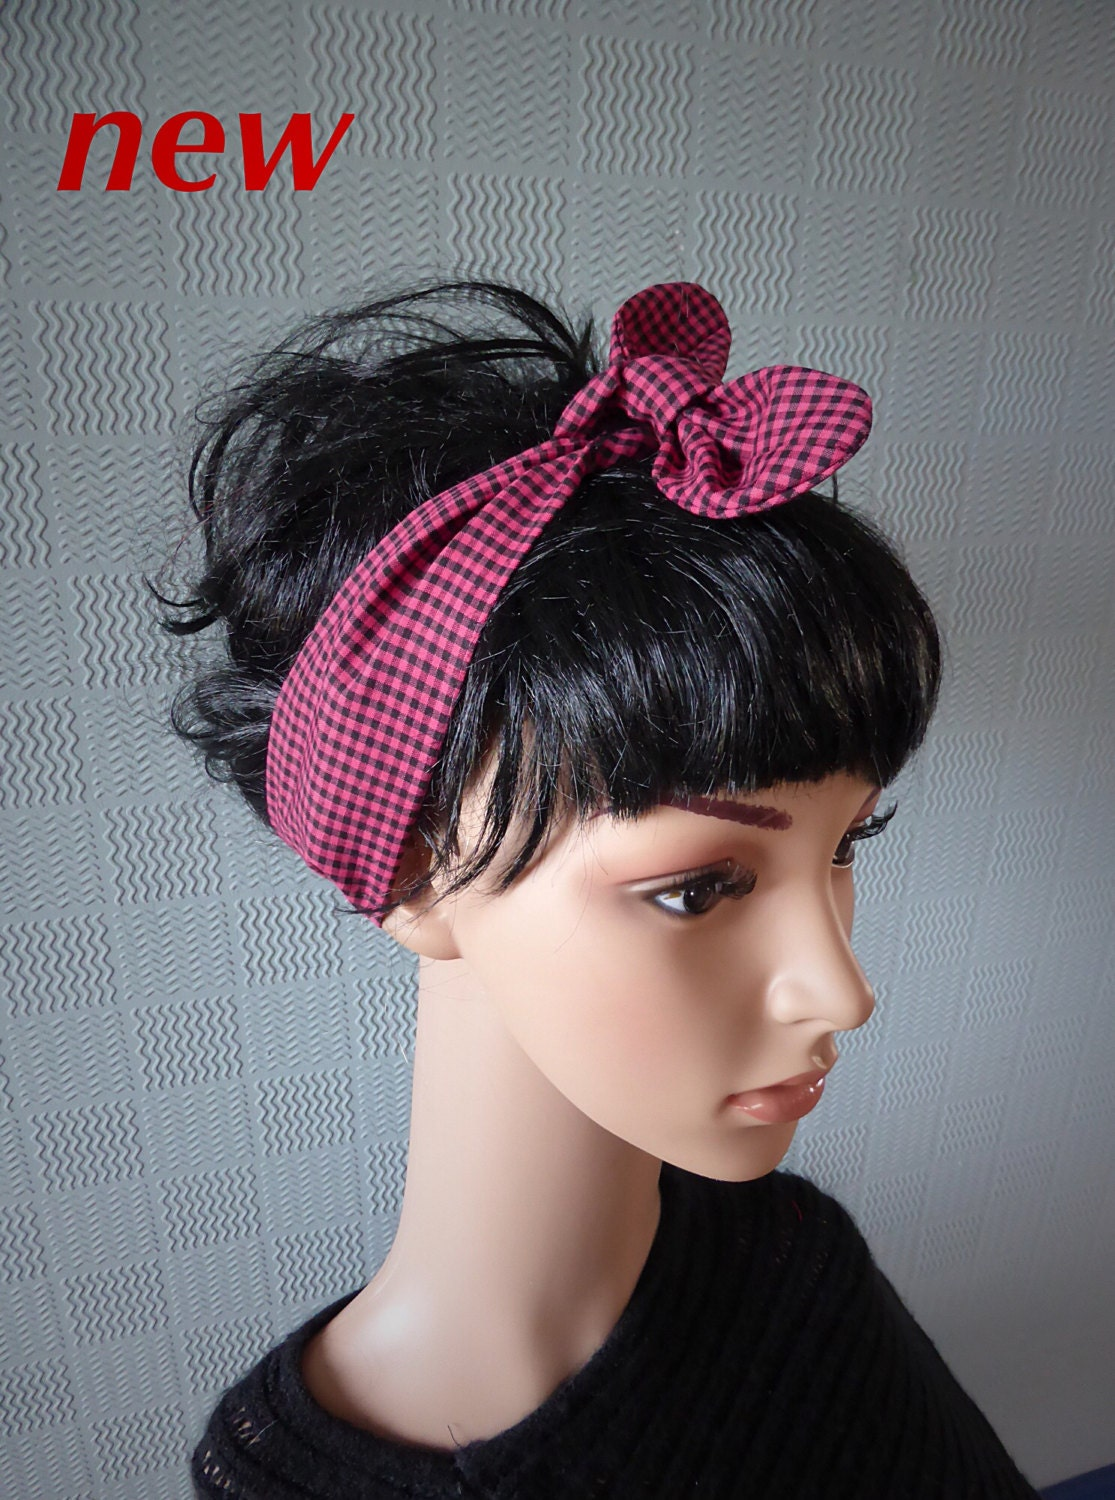 gingham retro vintage style rockabilly 50 s scarf hair